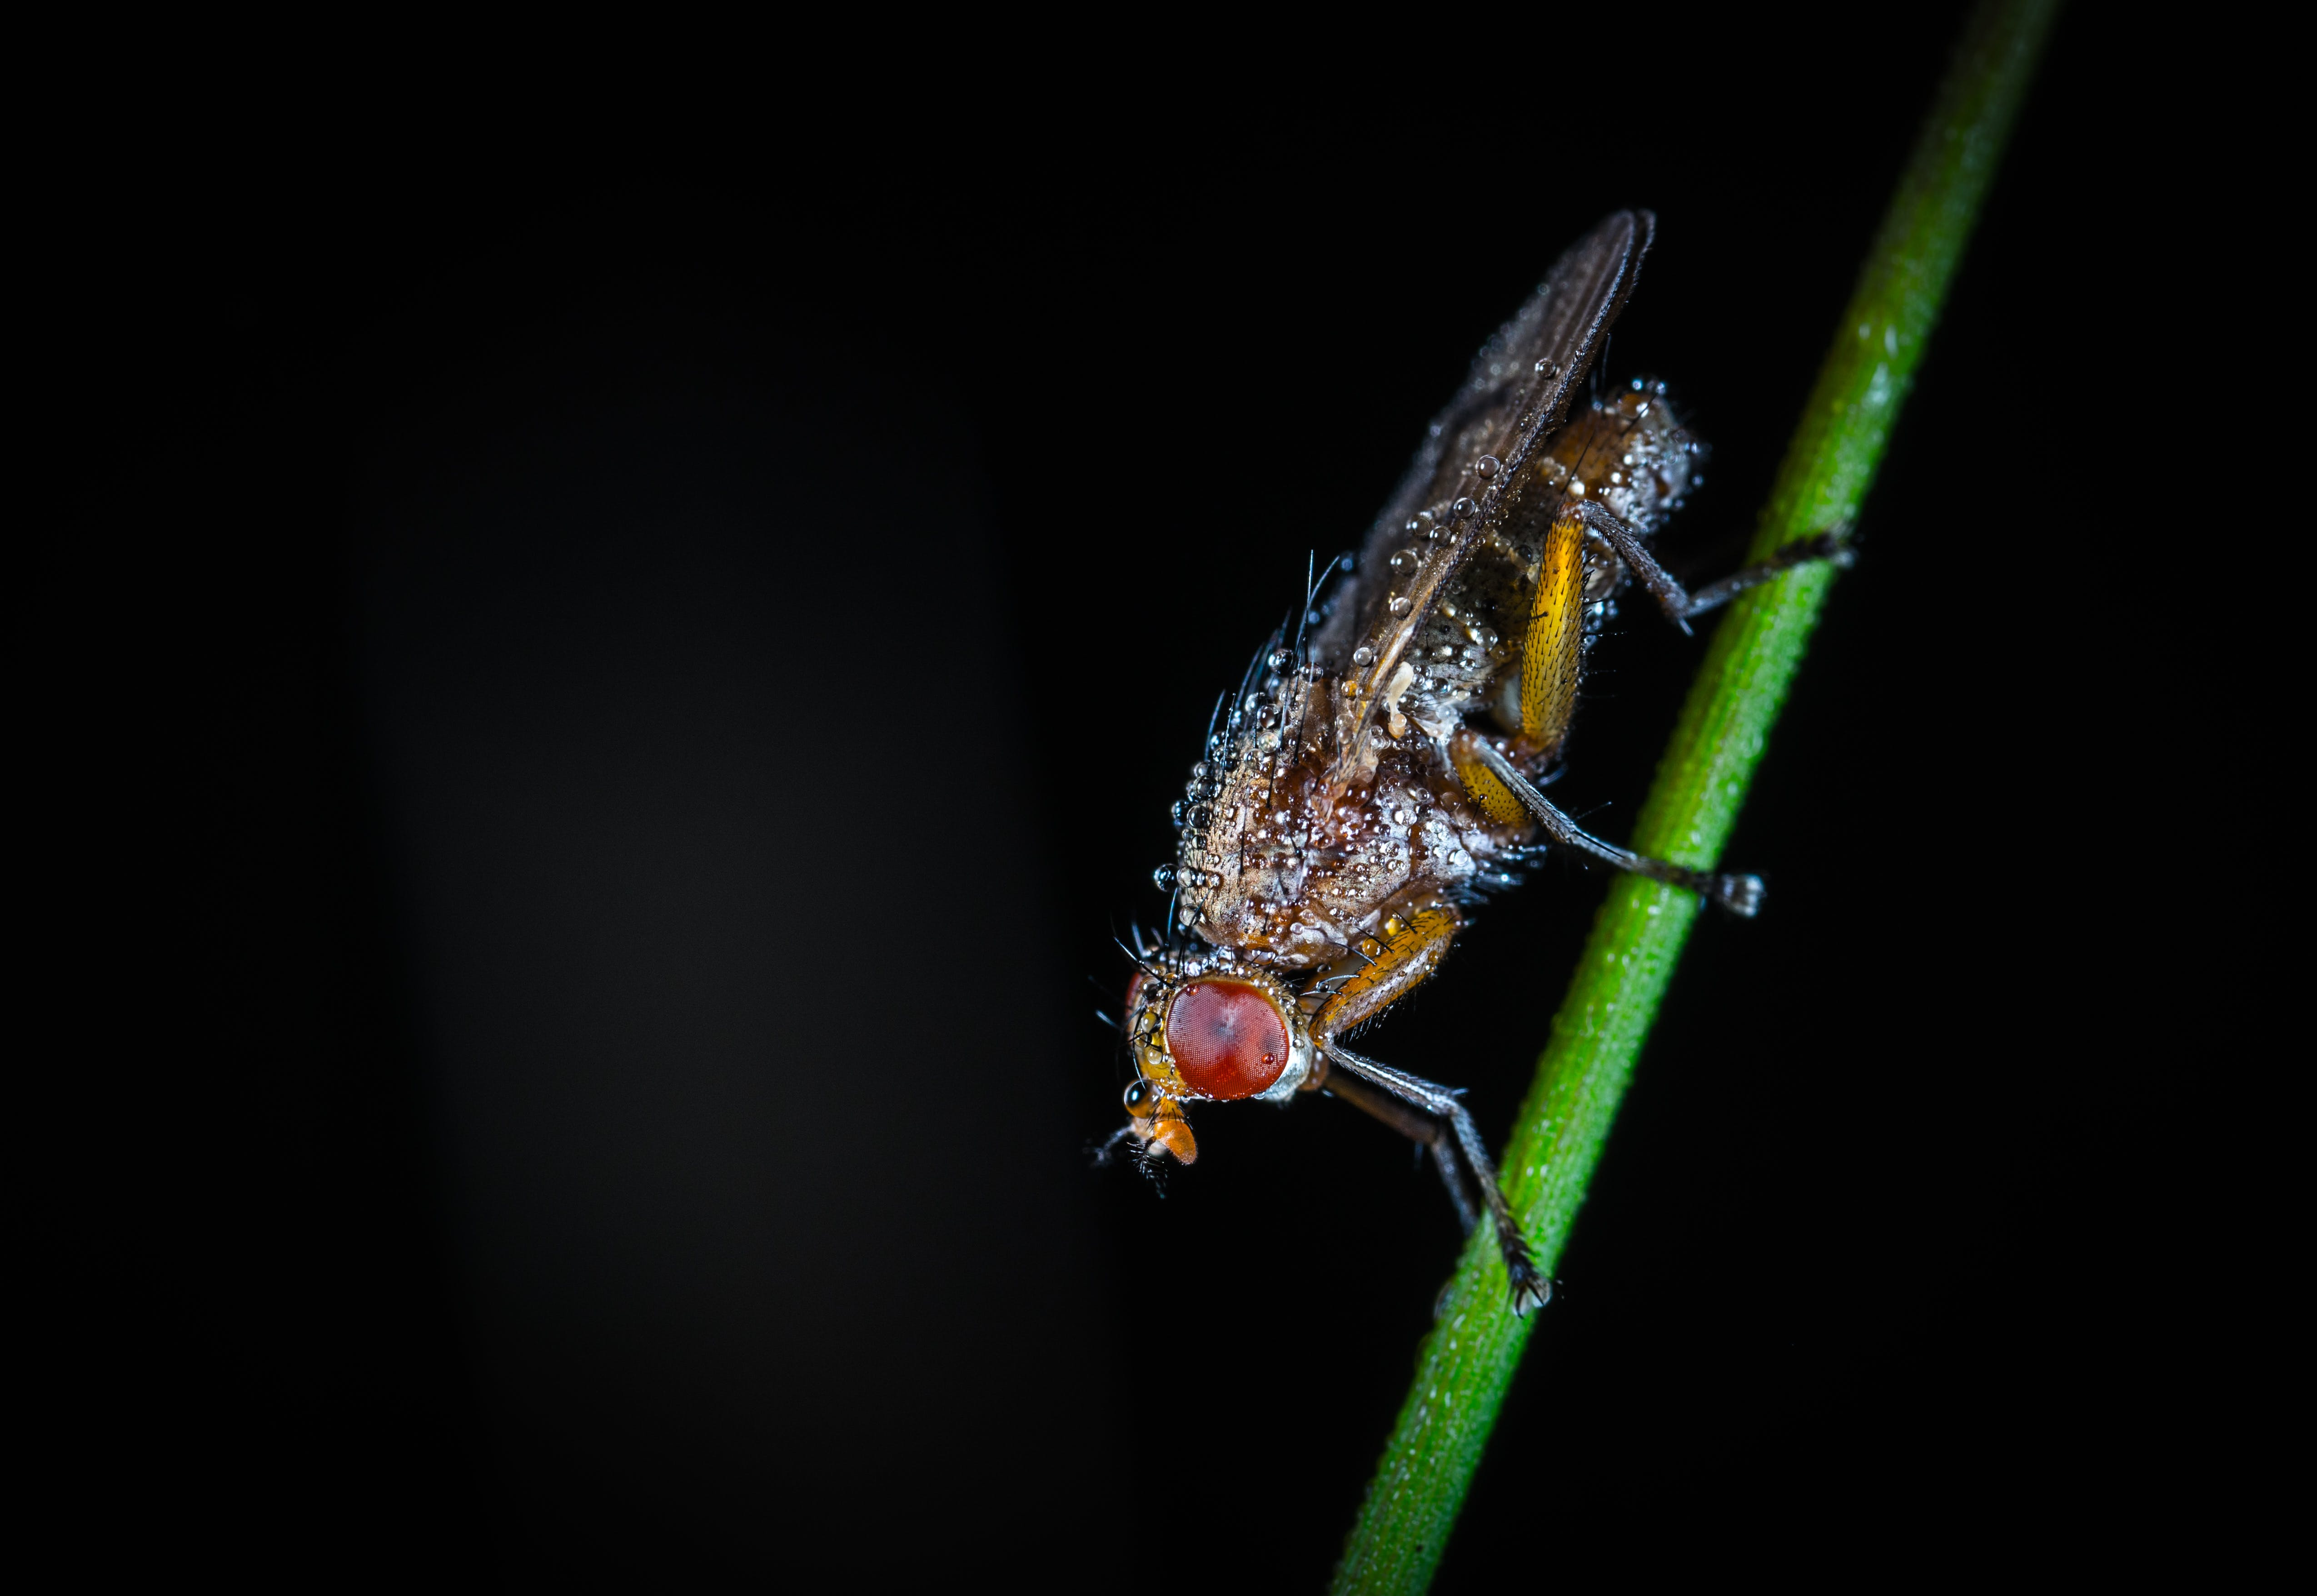 Free stock photo of dew, fly, insect, macro